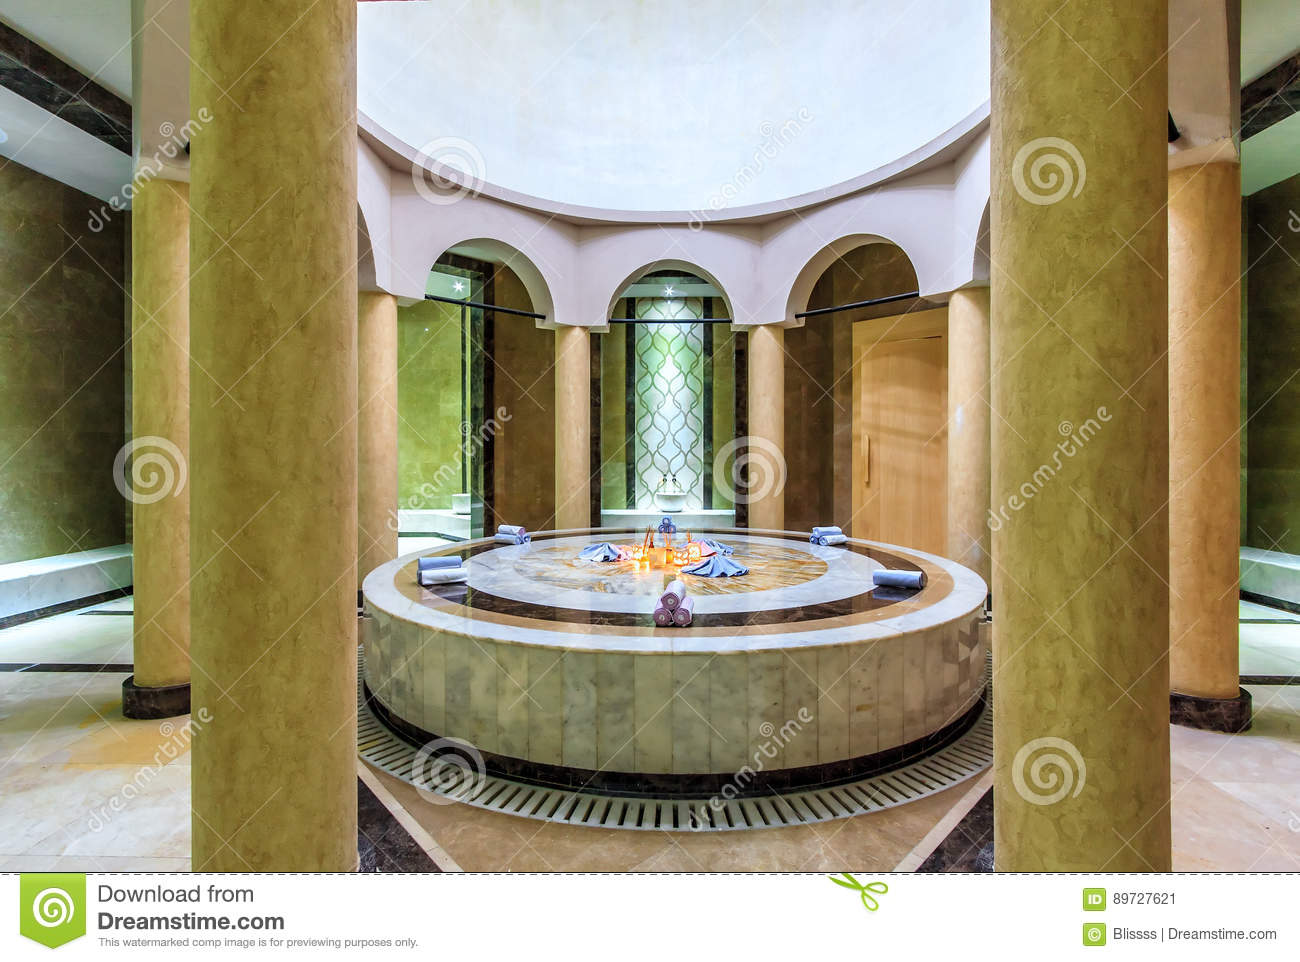 https://thumbs.dreamstime.com/z/soul-spa-turkish-hamam-interior-comfortable-authentic-oriental-setting-turns-ordinary-pastime-unforgettable-exotic-relax-89727621.jpg